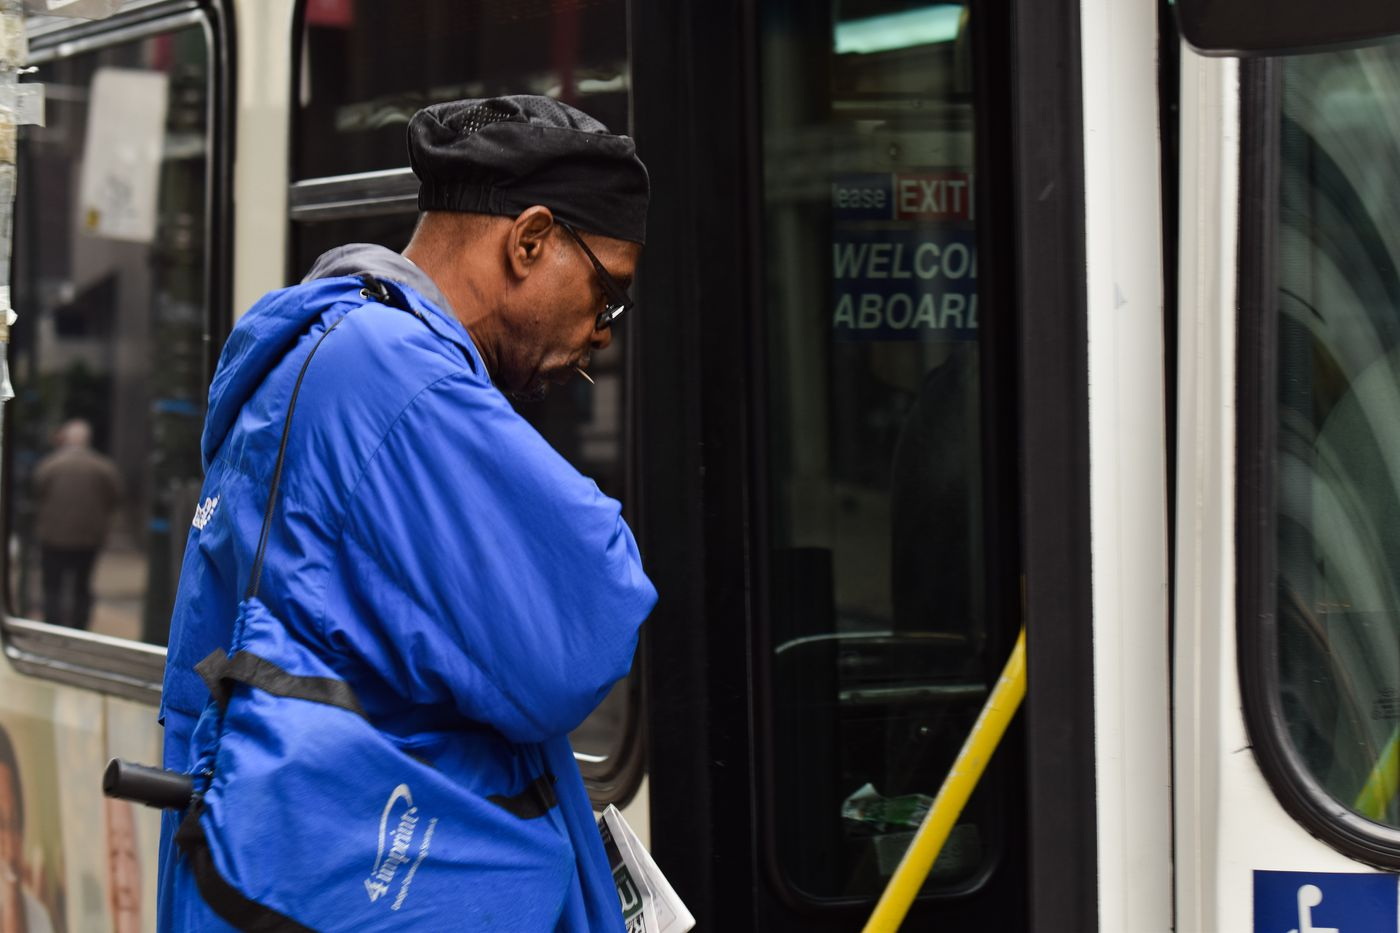 SEPTA Key problems led to untold numbers of free rides since August